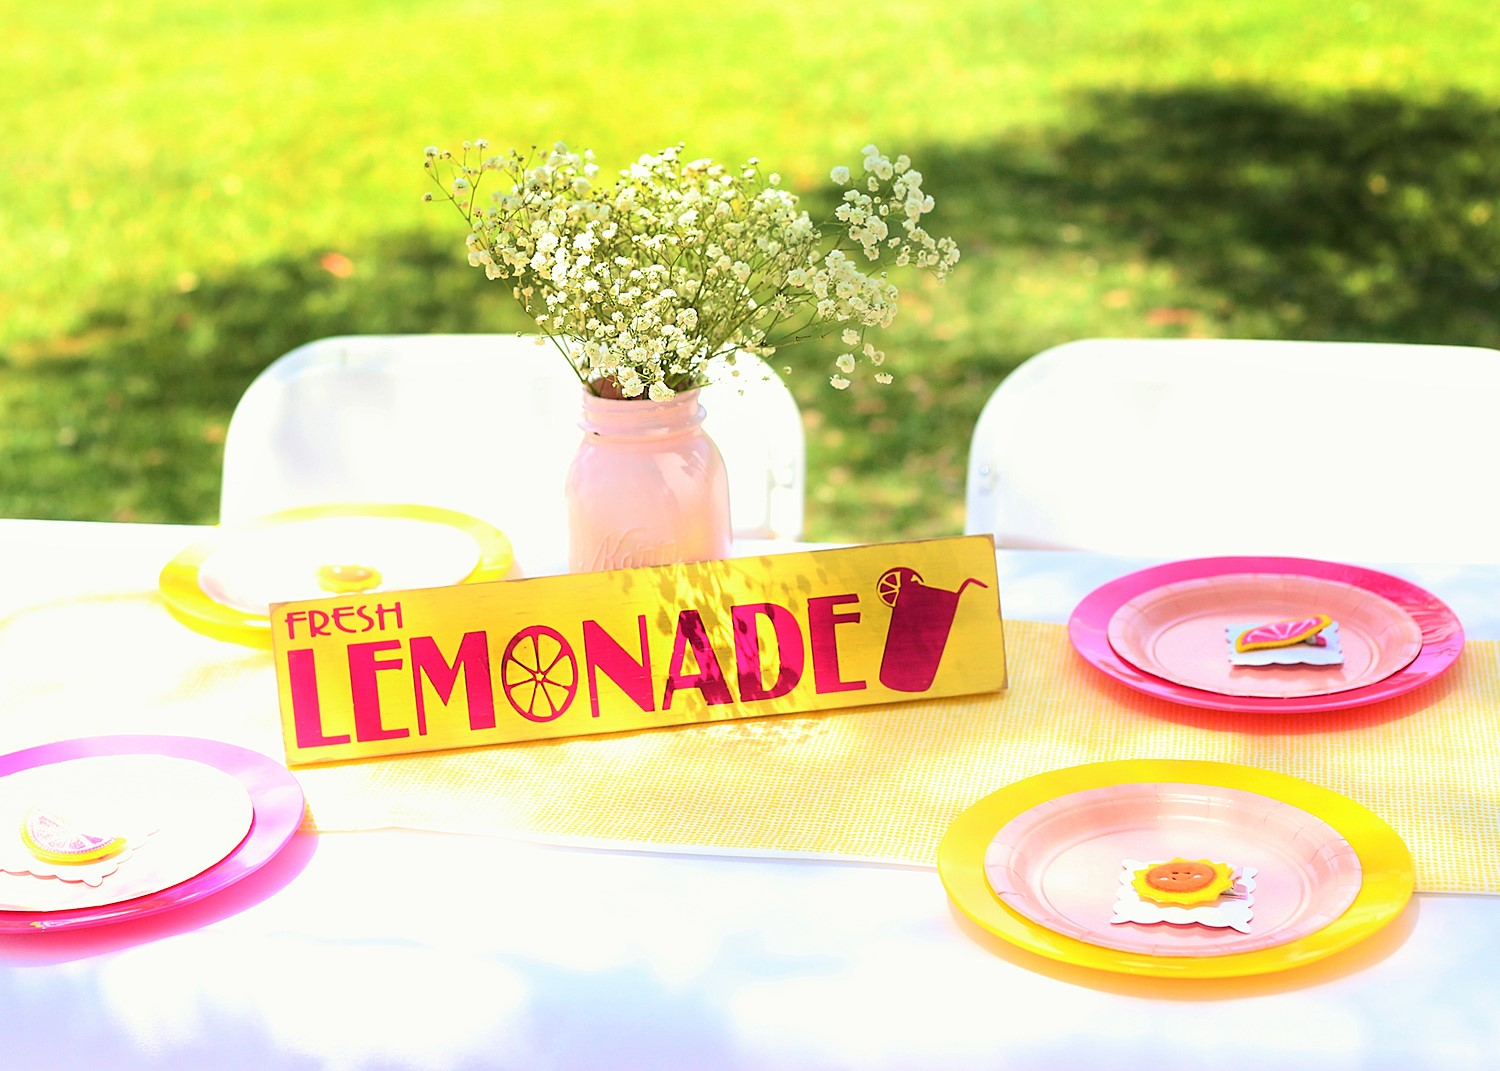 sunshine and lemonade party lemonade stand sign